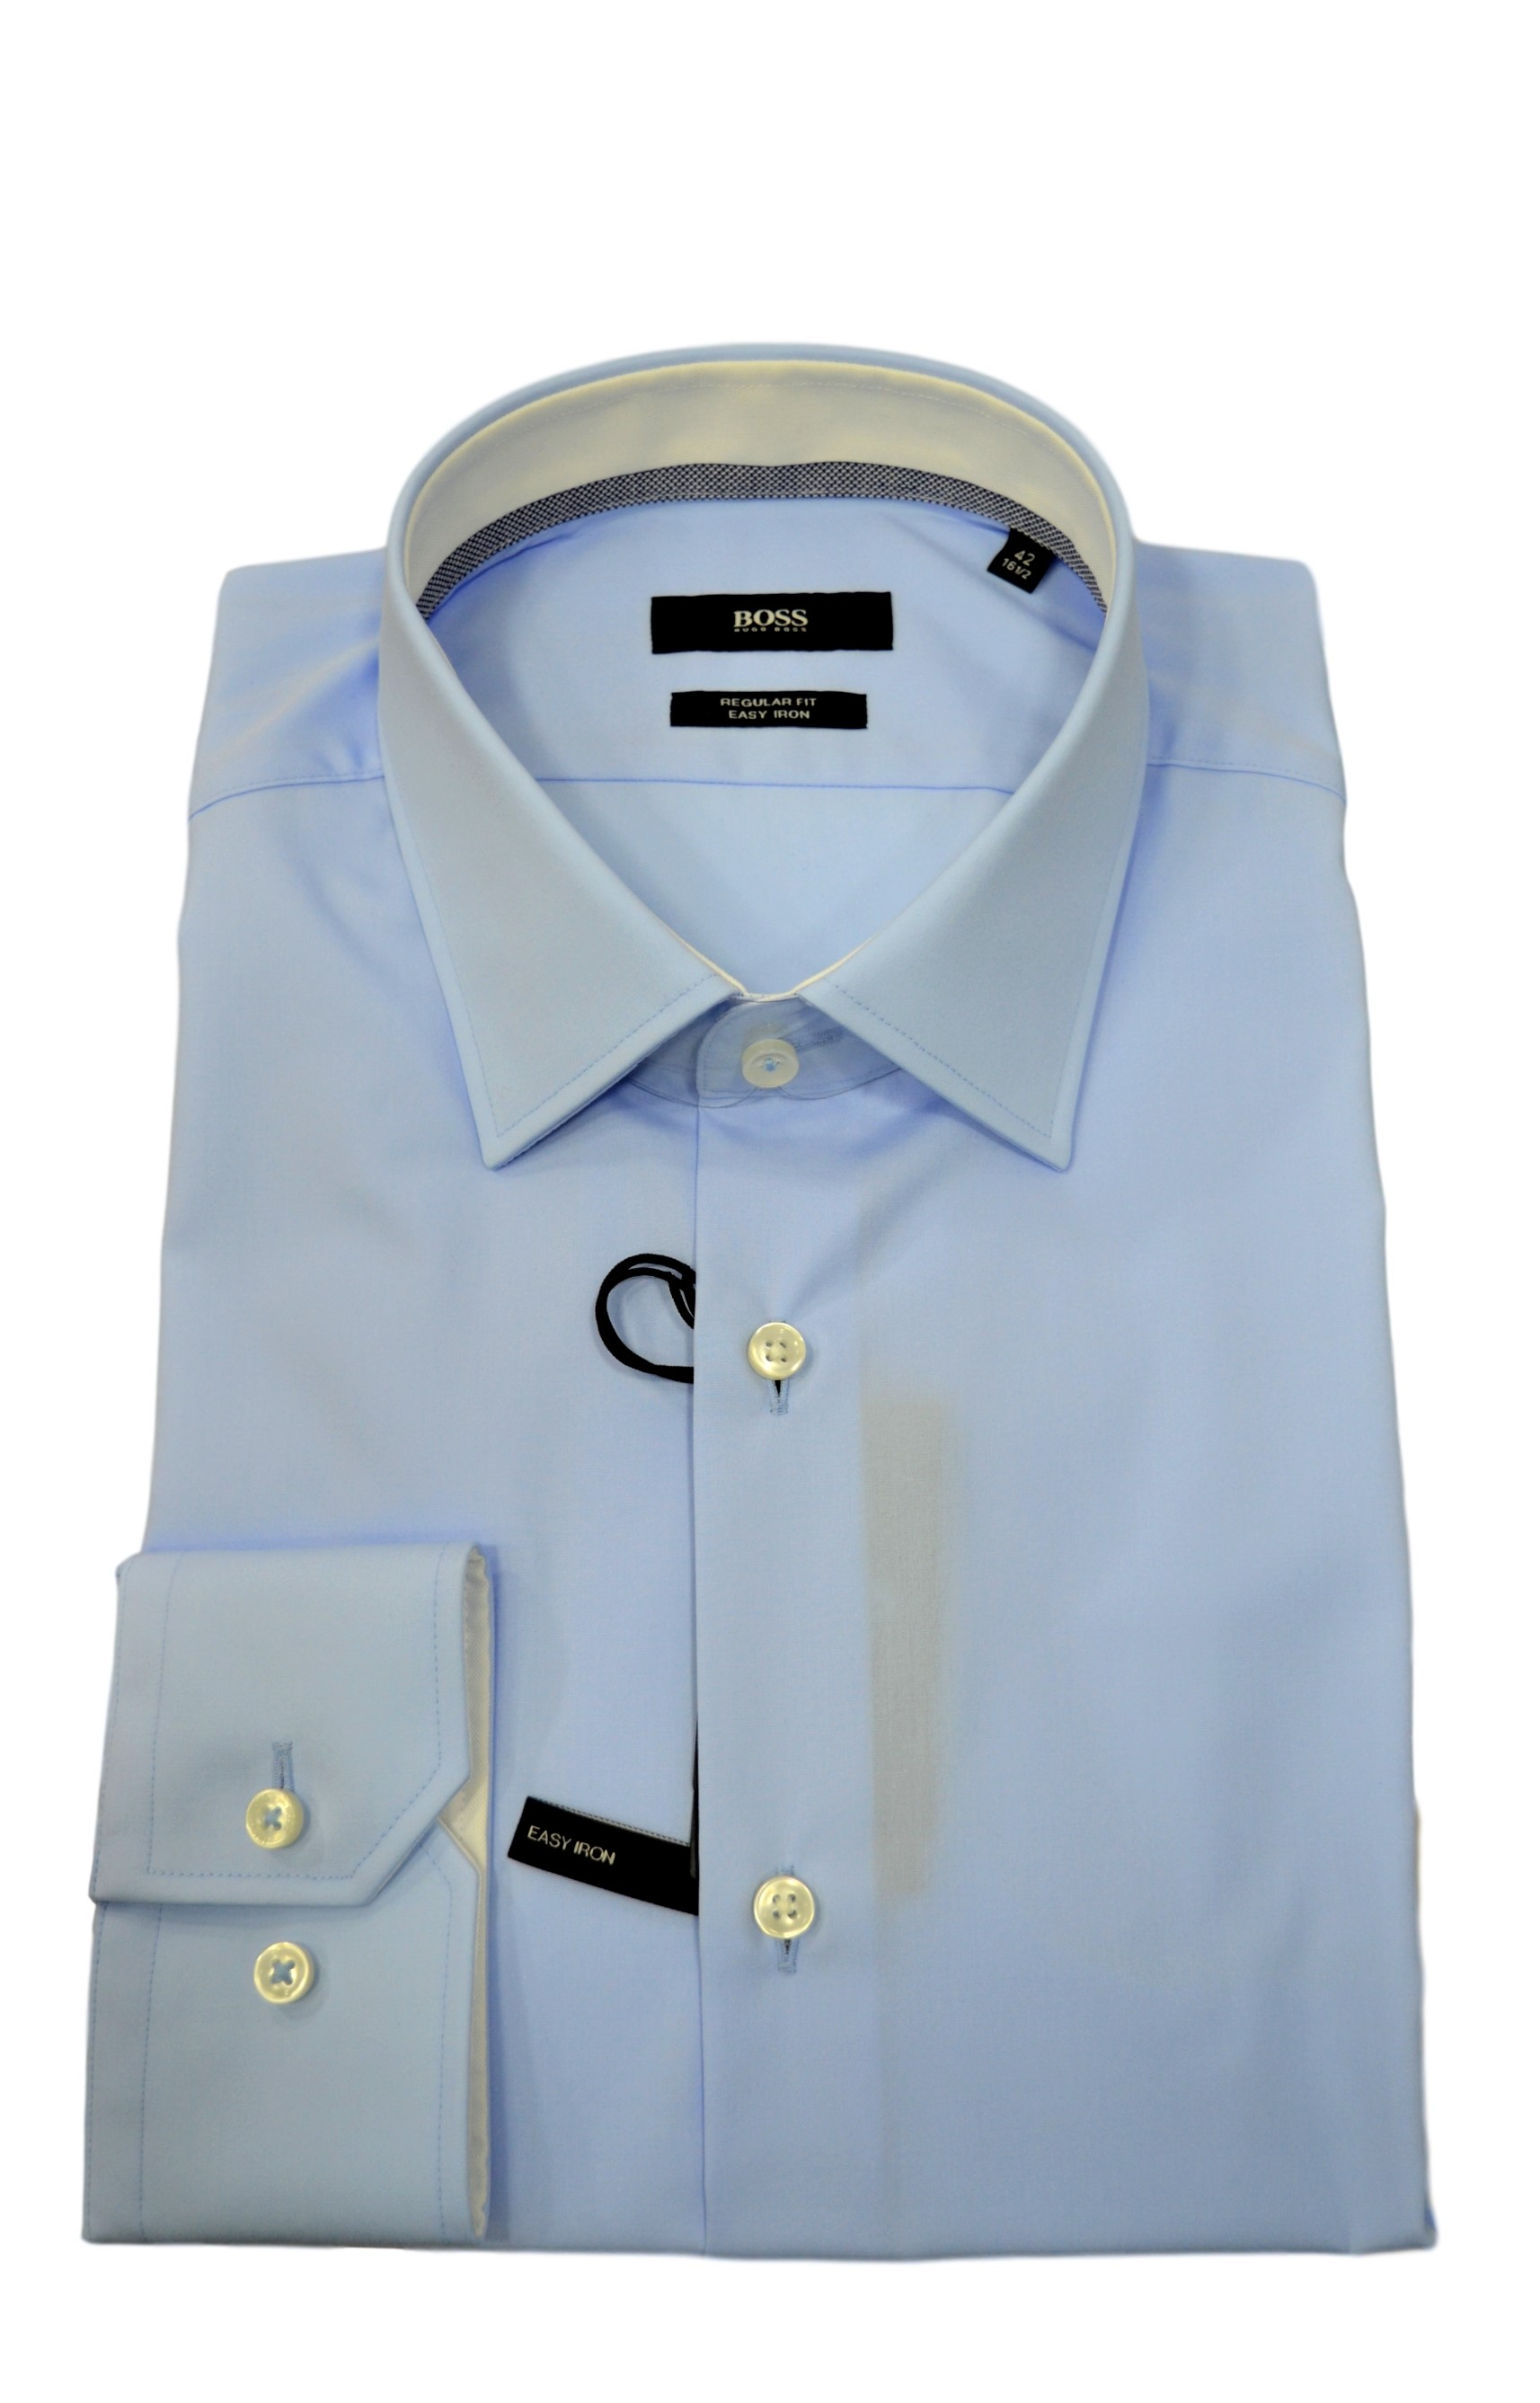 HUGO BOSS CAMICIA UOMO 50415621 GORAN REGULAR FIT CELESTE